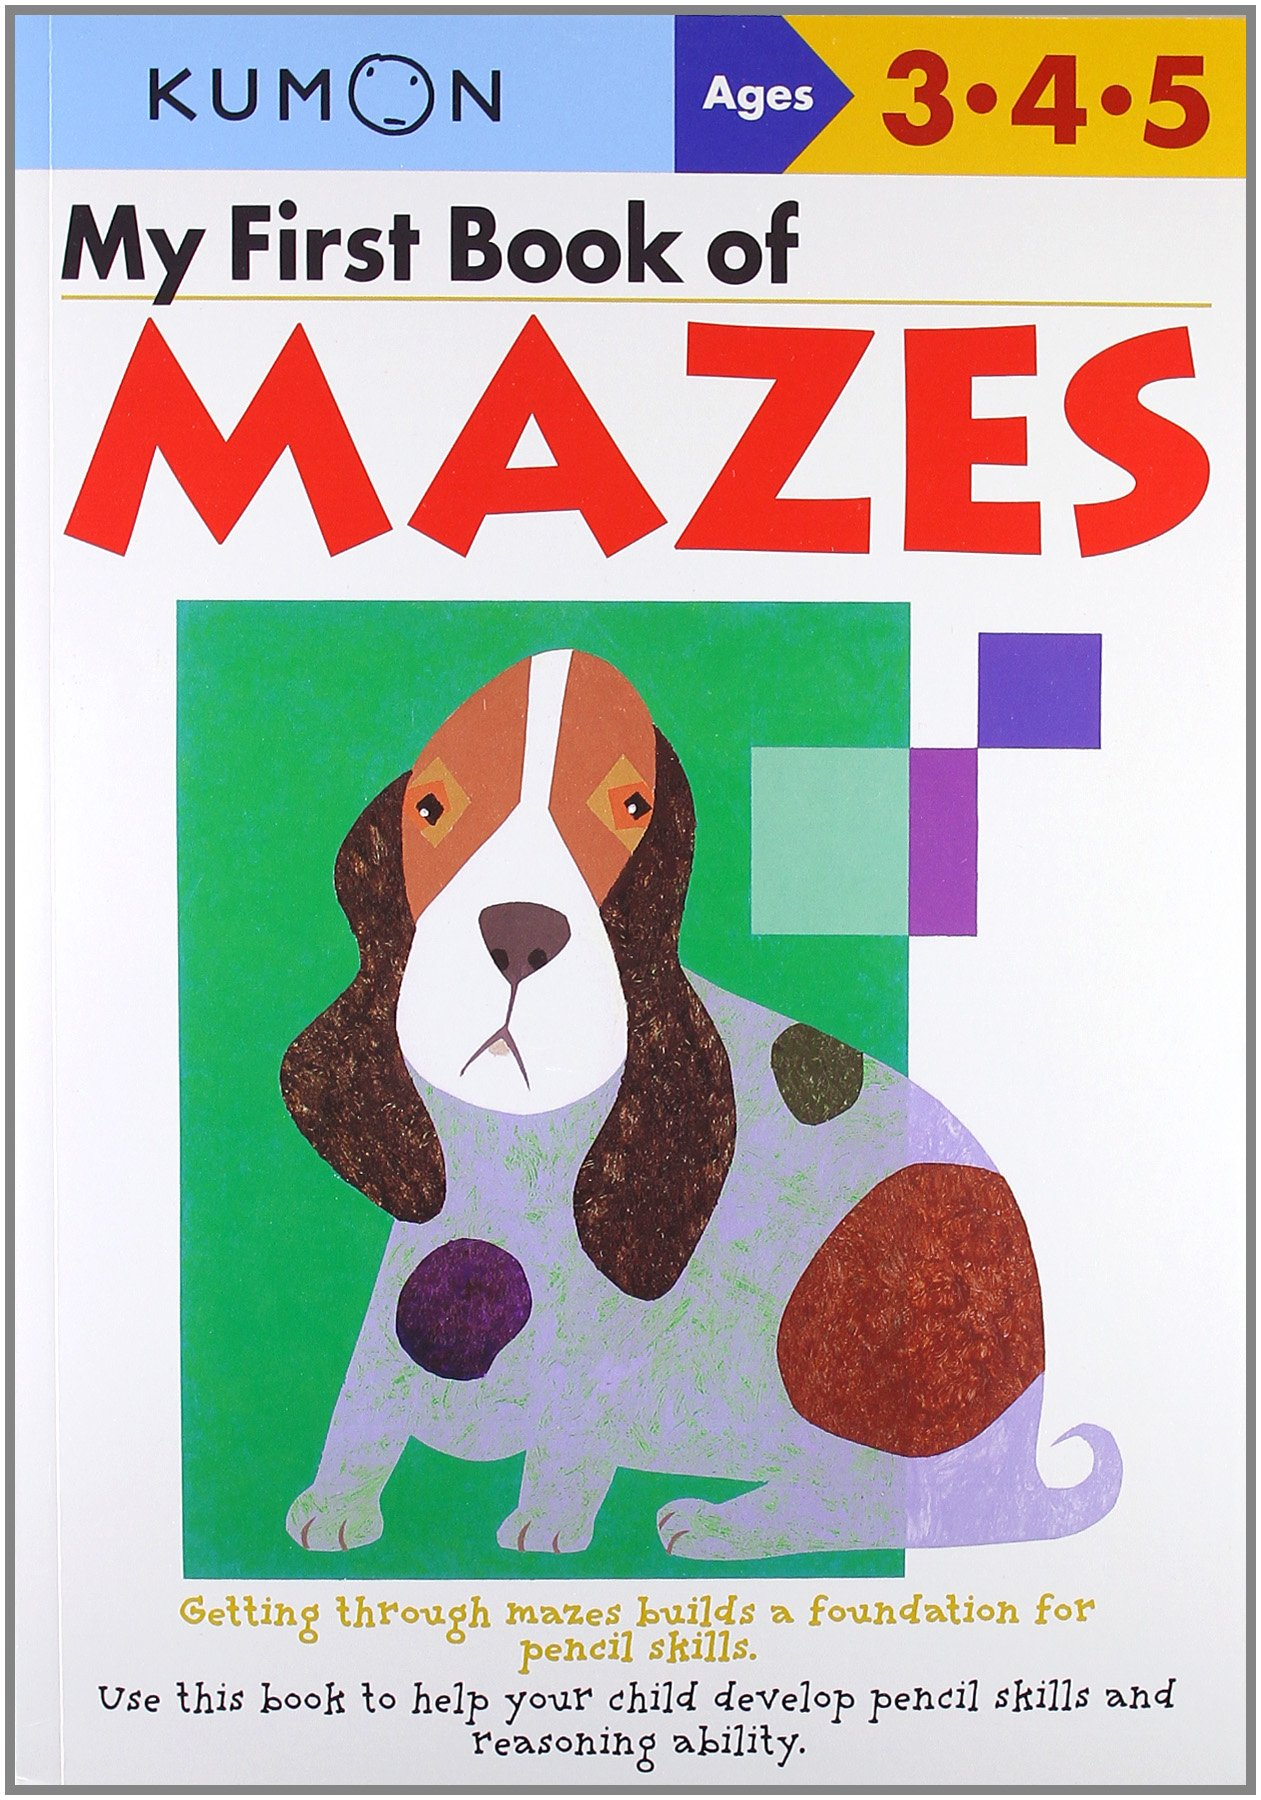 My First Book Mazes Kumon product image